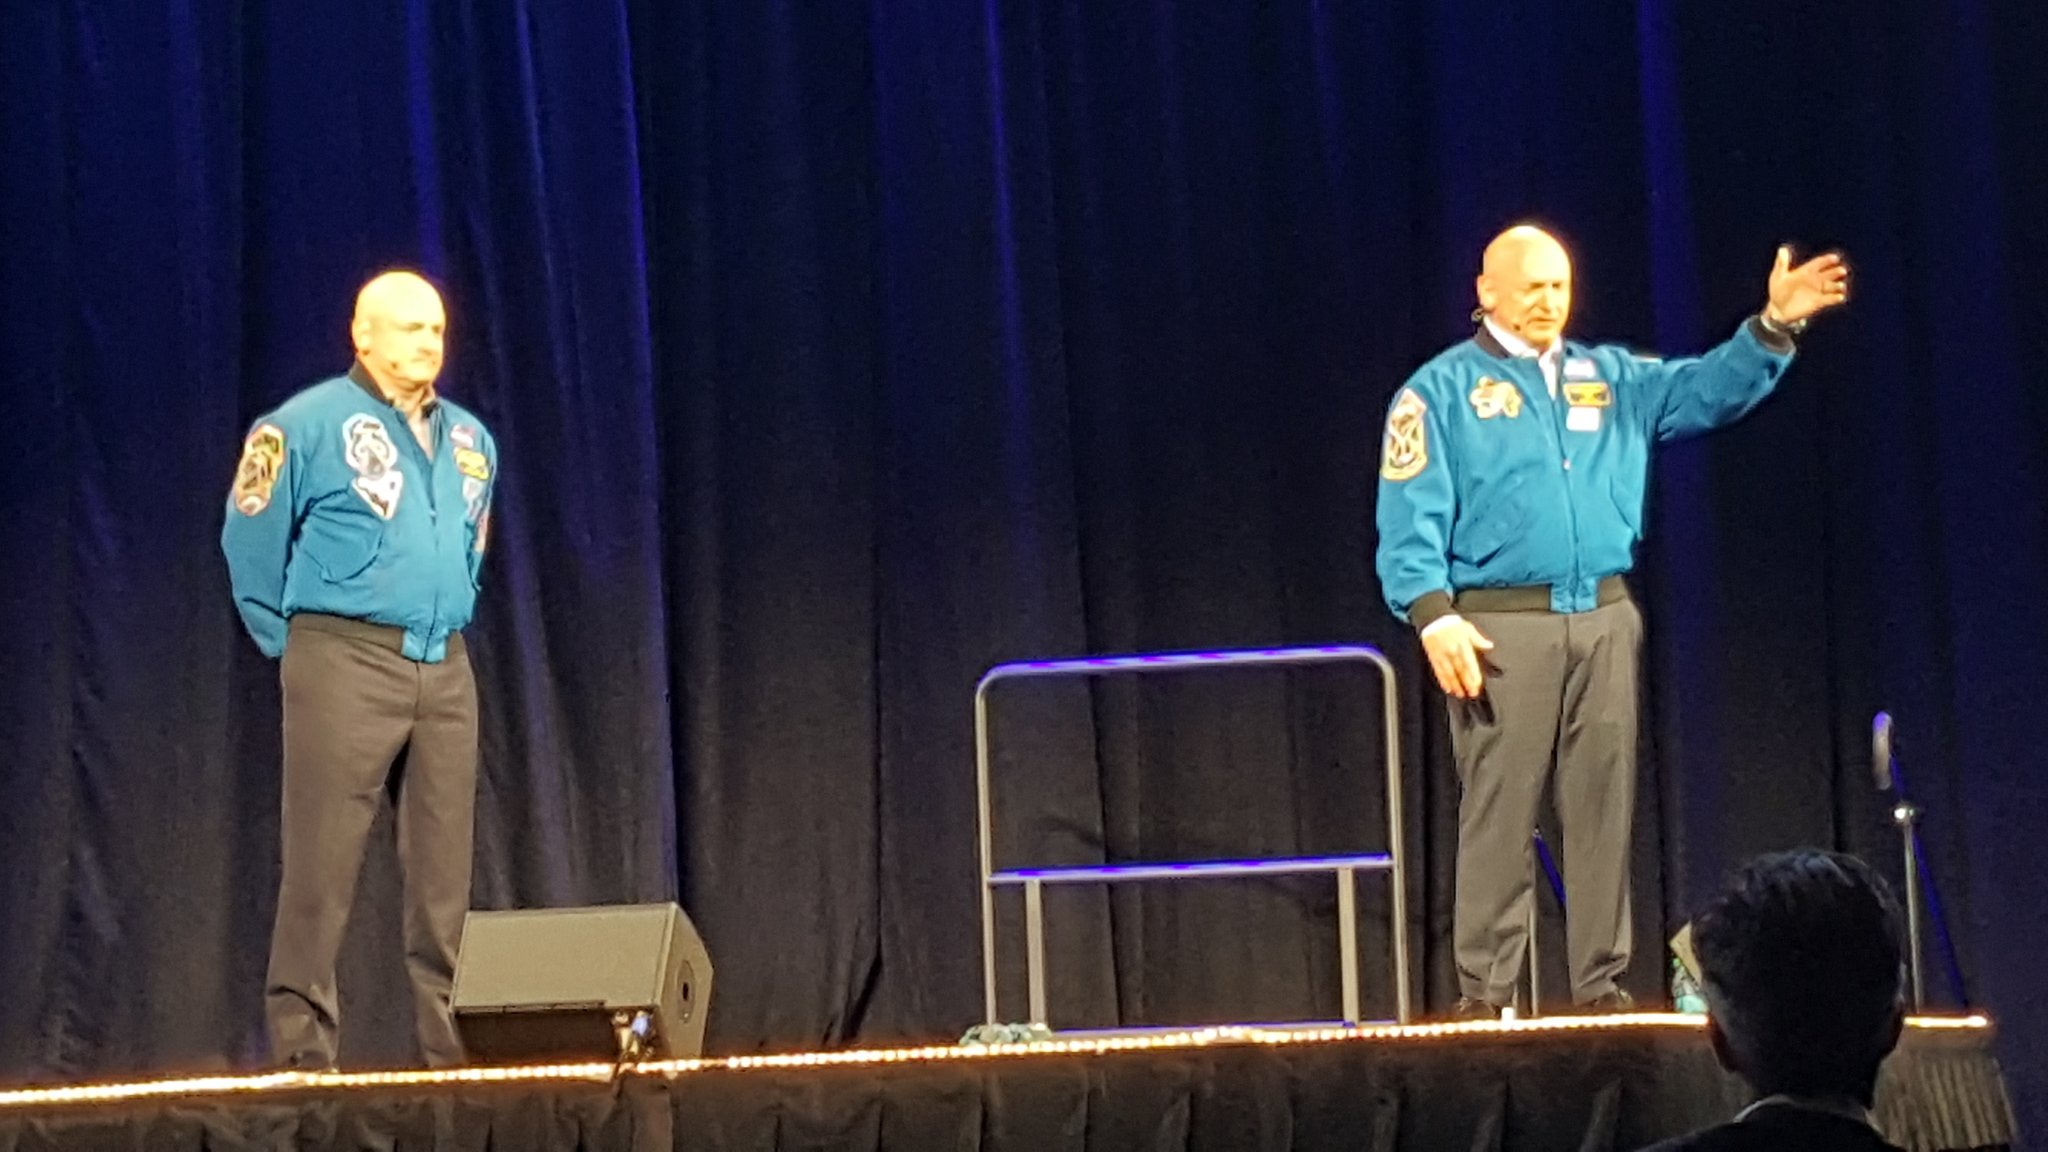 Getting motivated by Capts Mark & Scott Kelly  #ASAE2016 #TNTDINSLC #DELTA_DMN https://t.co/1cEP9FWBAh